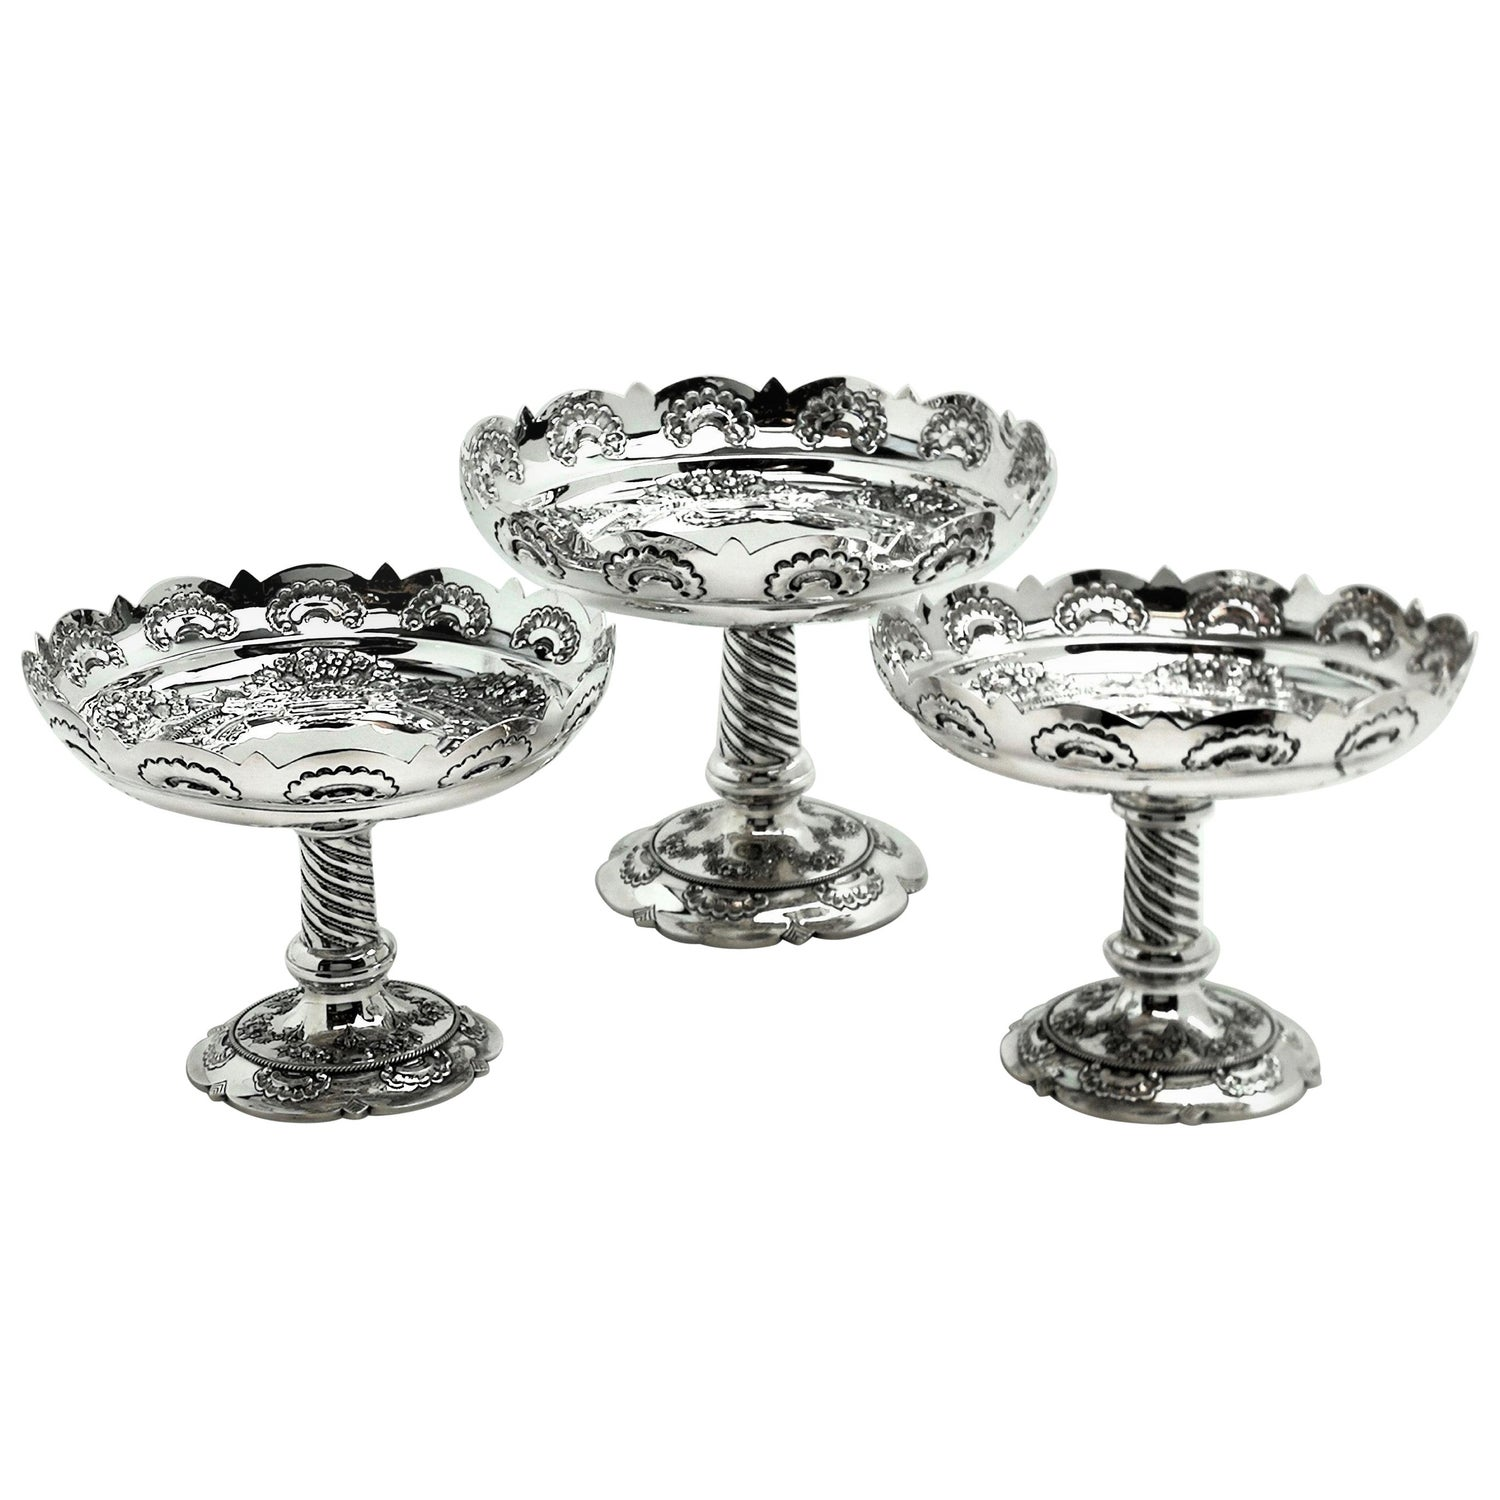 Suite of 3 Antique Victorian Silver Comports / Dishes 1892 / 93 Centrepiece